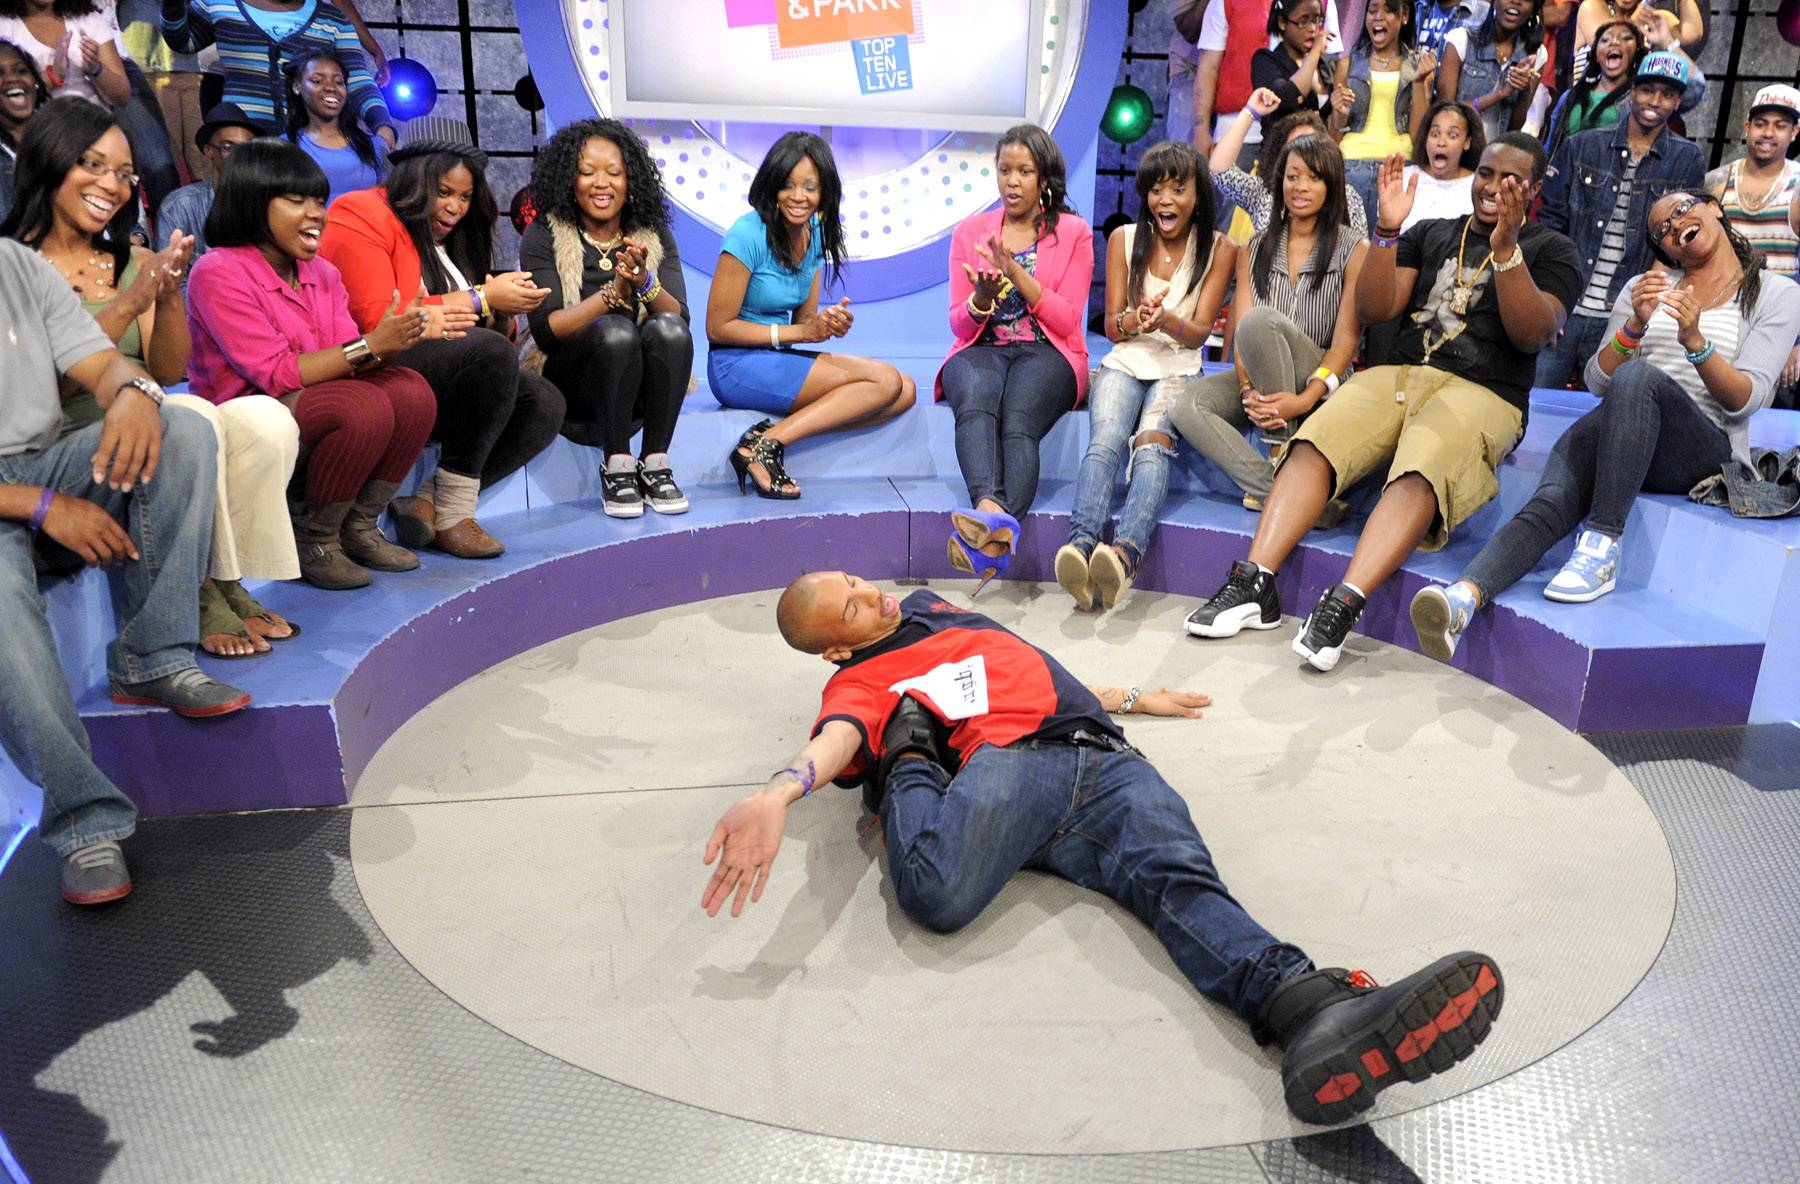 Check me out - Audience member gets down at 106 & Park, May 16, 2012. (Photo: John Ricard / BET)